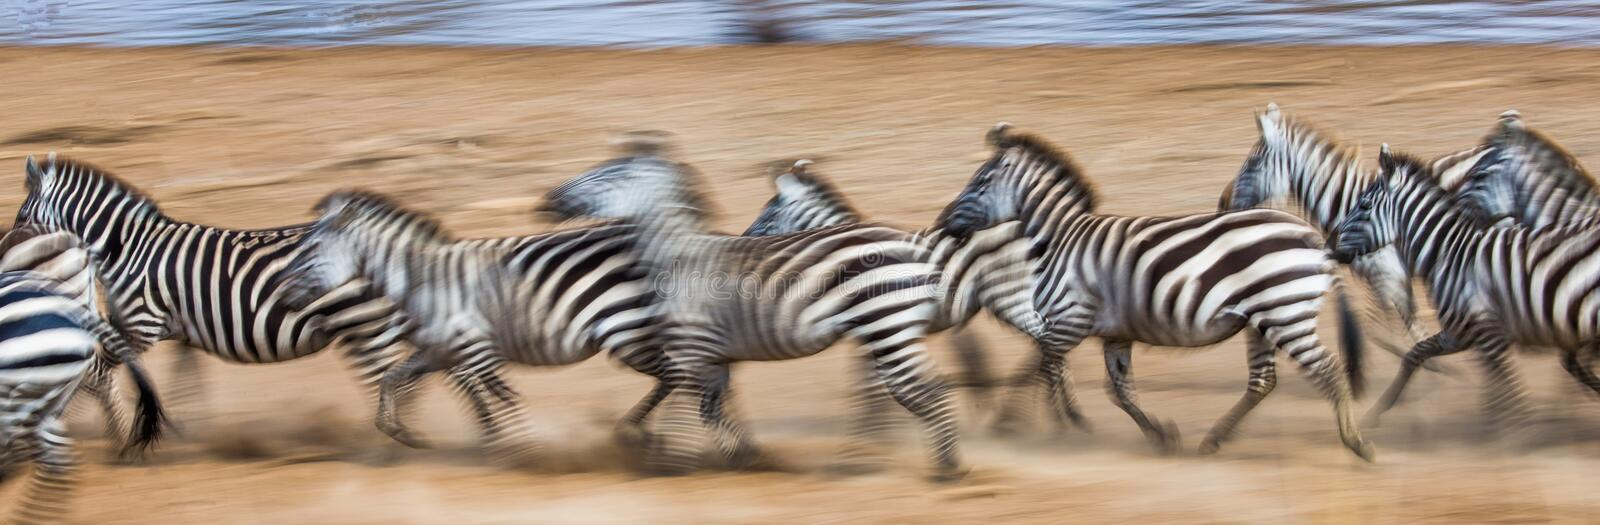 Zebras are running in the dust in motion. Kenya. Tanzania. National Park. Serengeti. Masai Mara. An excellent illustration stock photo